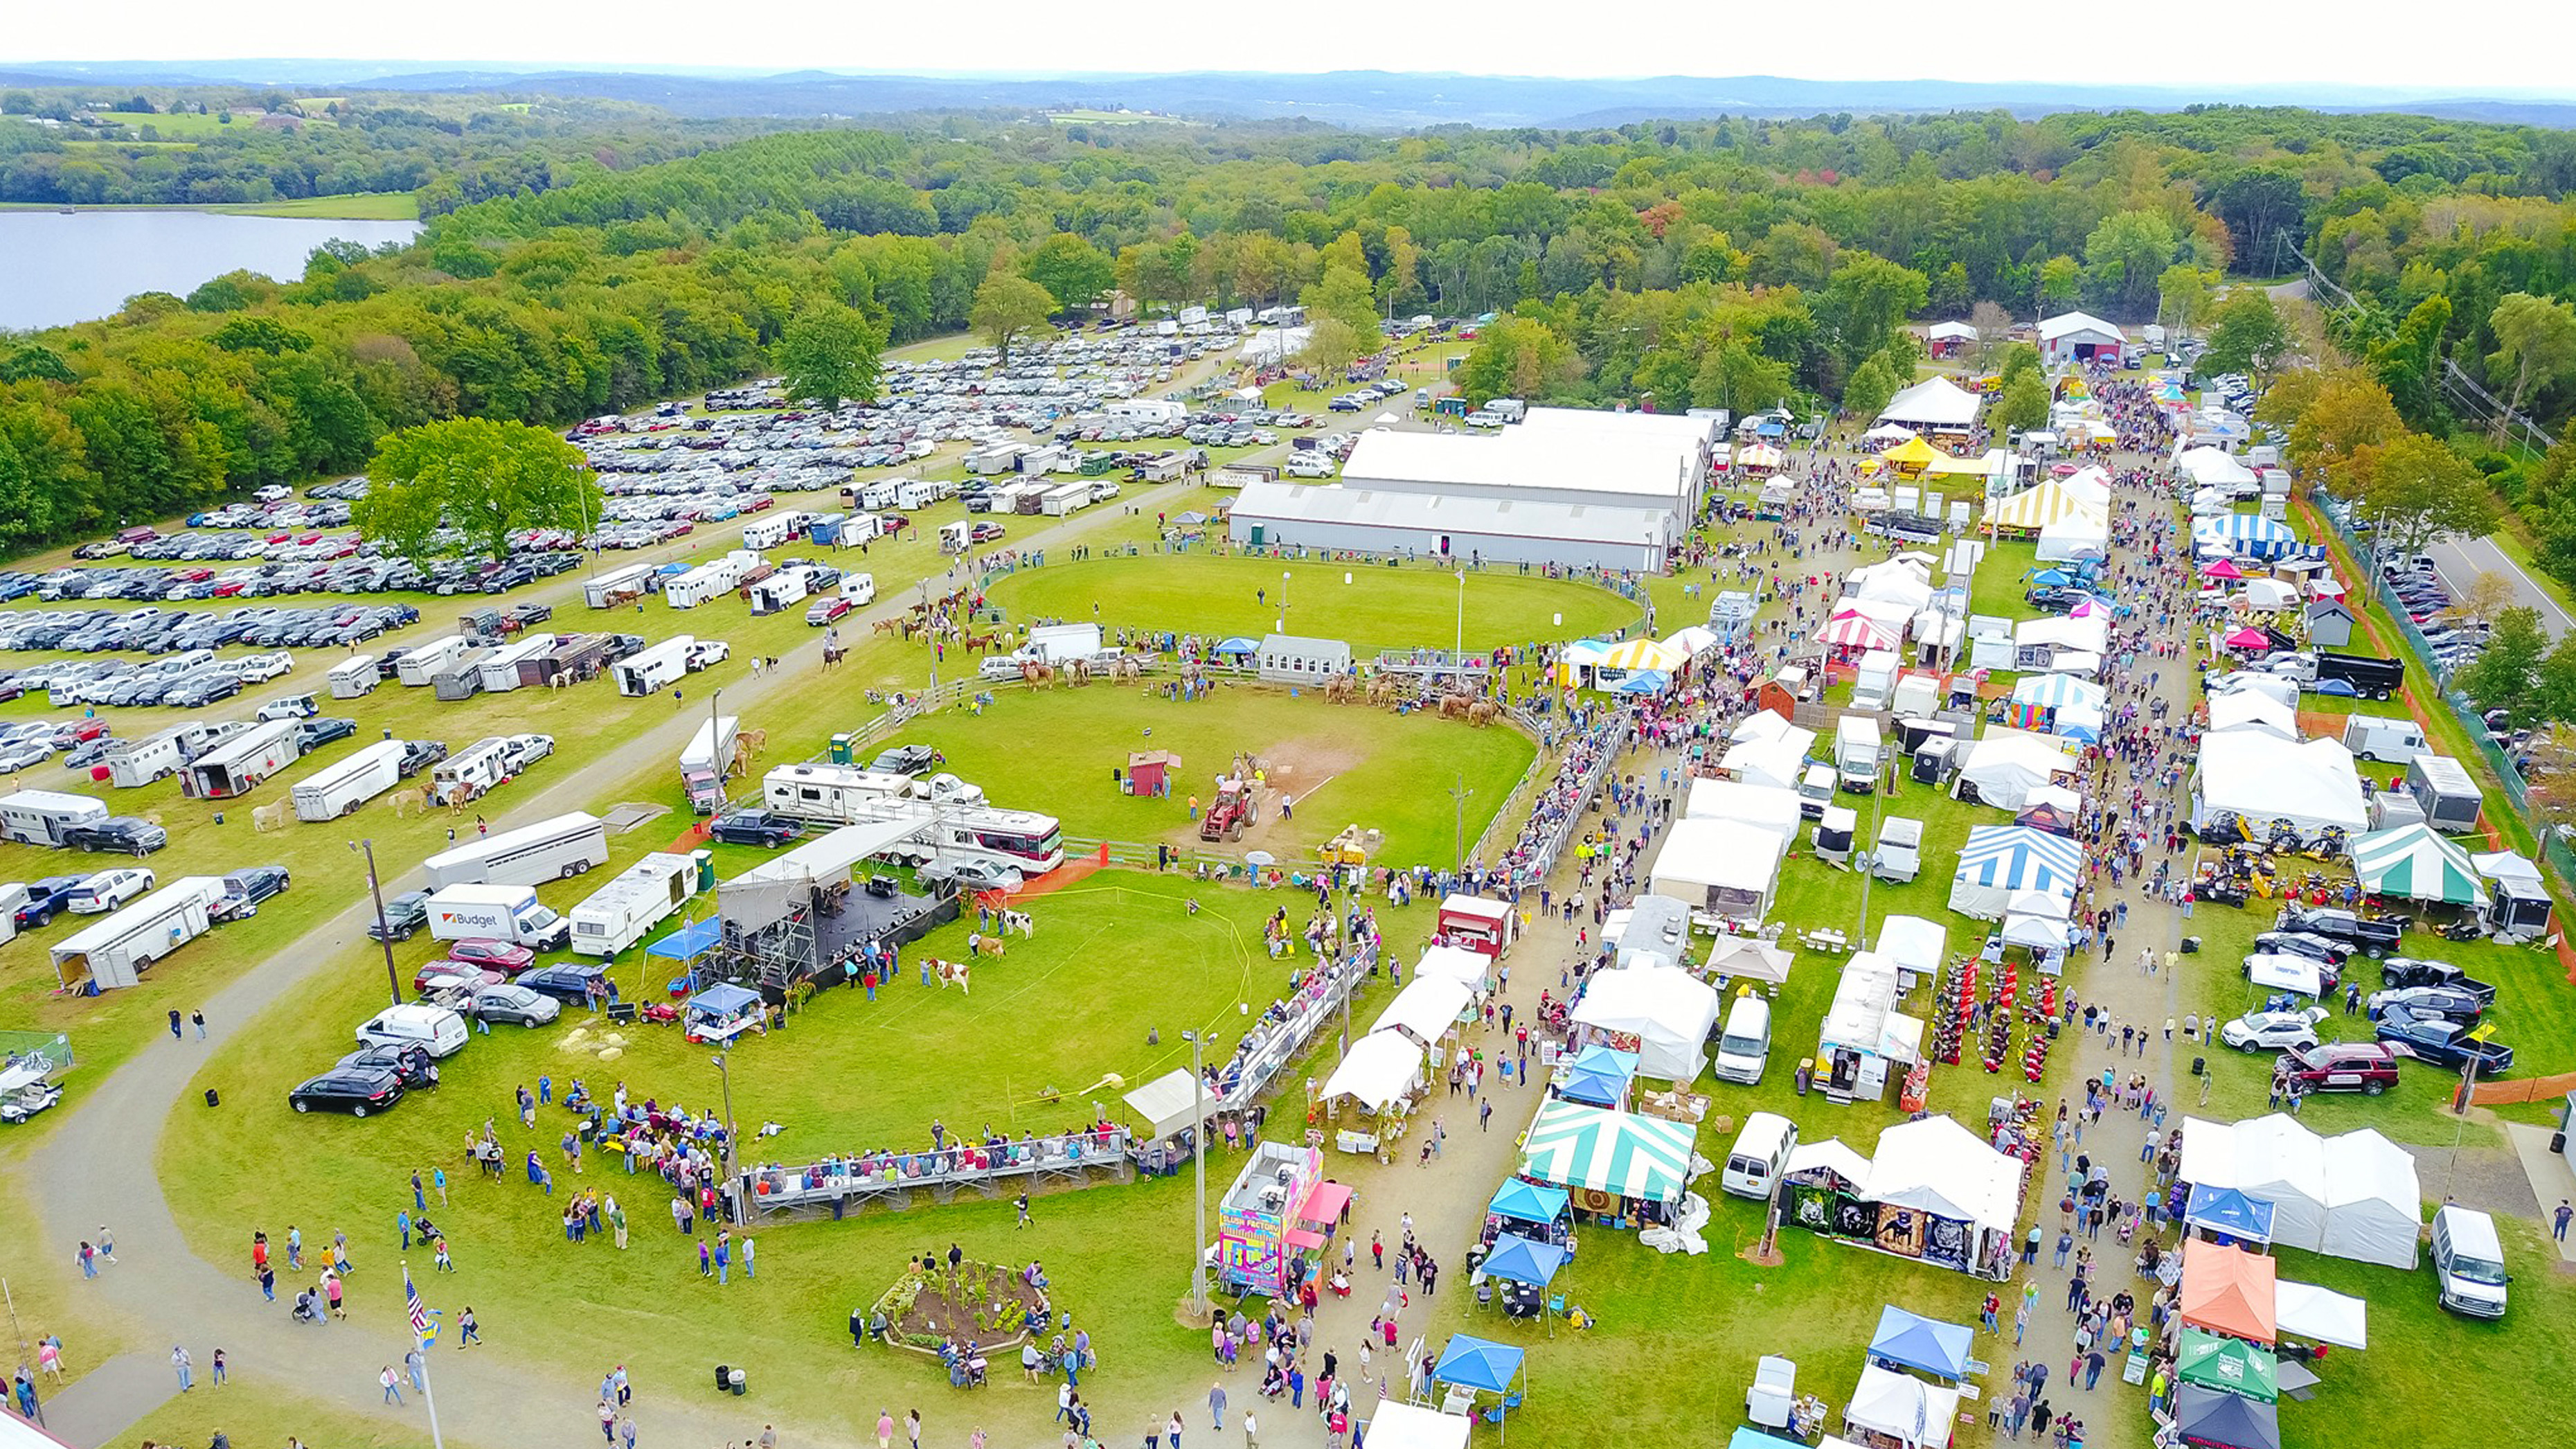 Aerial view of the Bethlehem Fair in Bethlehem, Connecticut